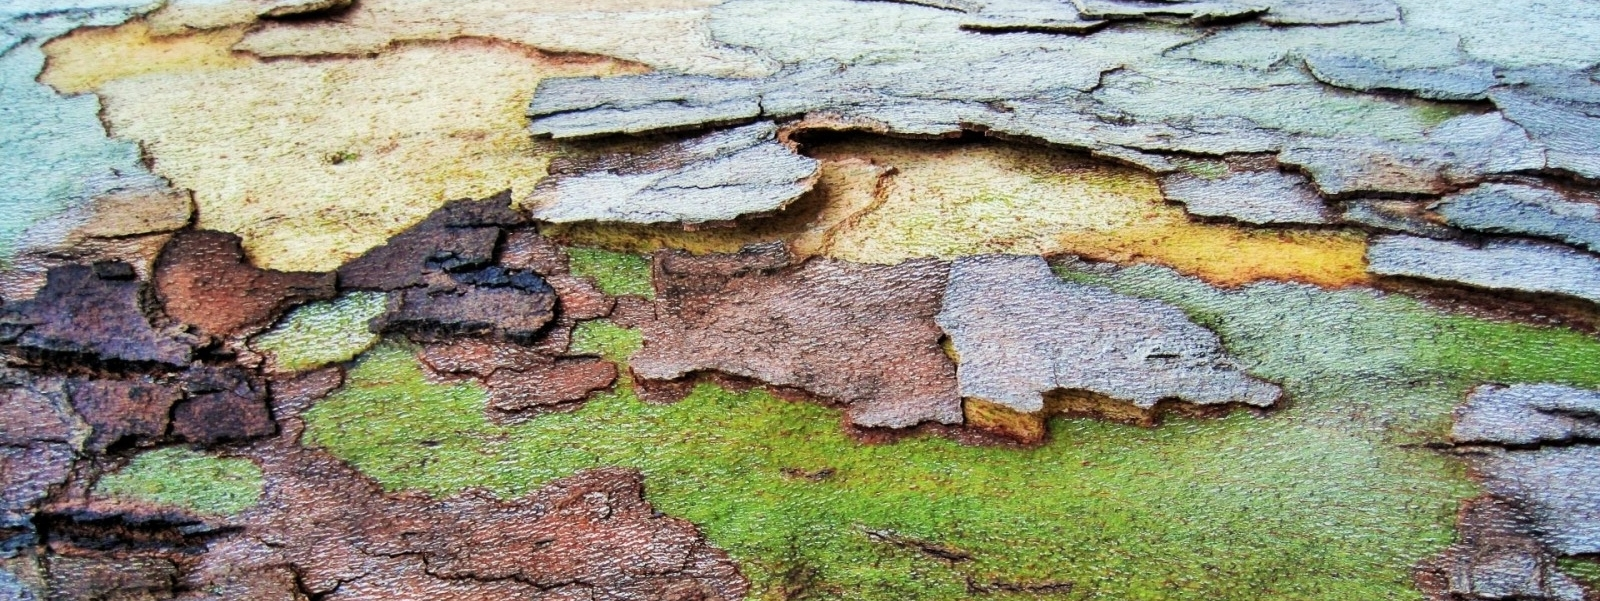 bark_patches_natural_organic_birch_environment_ecology_surface-1105940.jpg